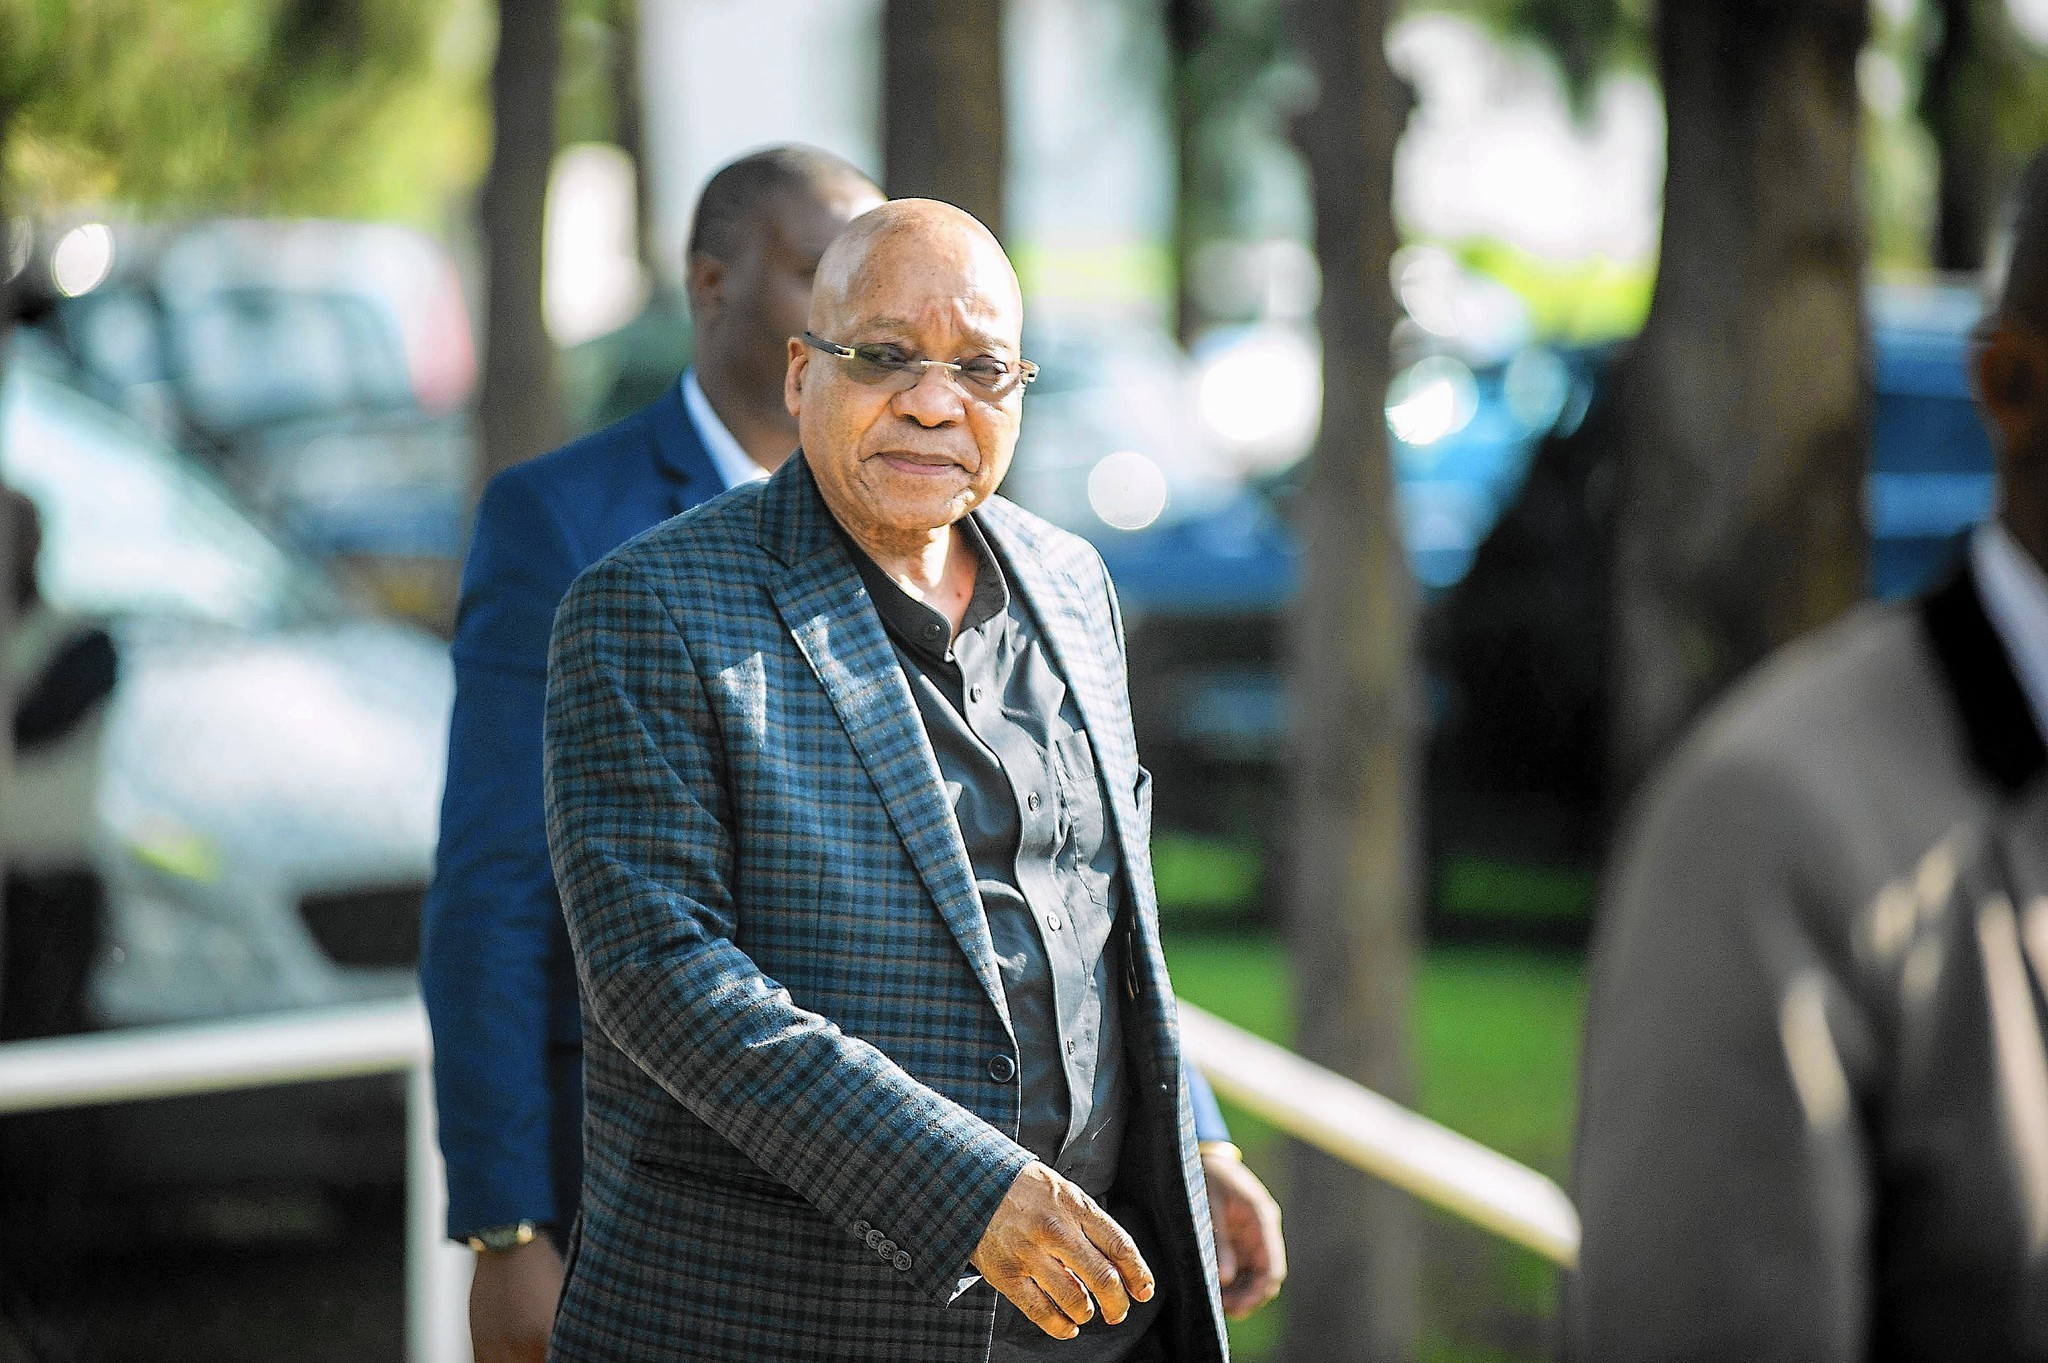 South African President Jacob Zuma is an embarrassment to memory of Mandela - Chicago Tribune